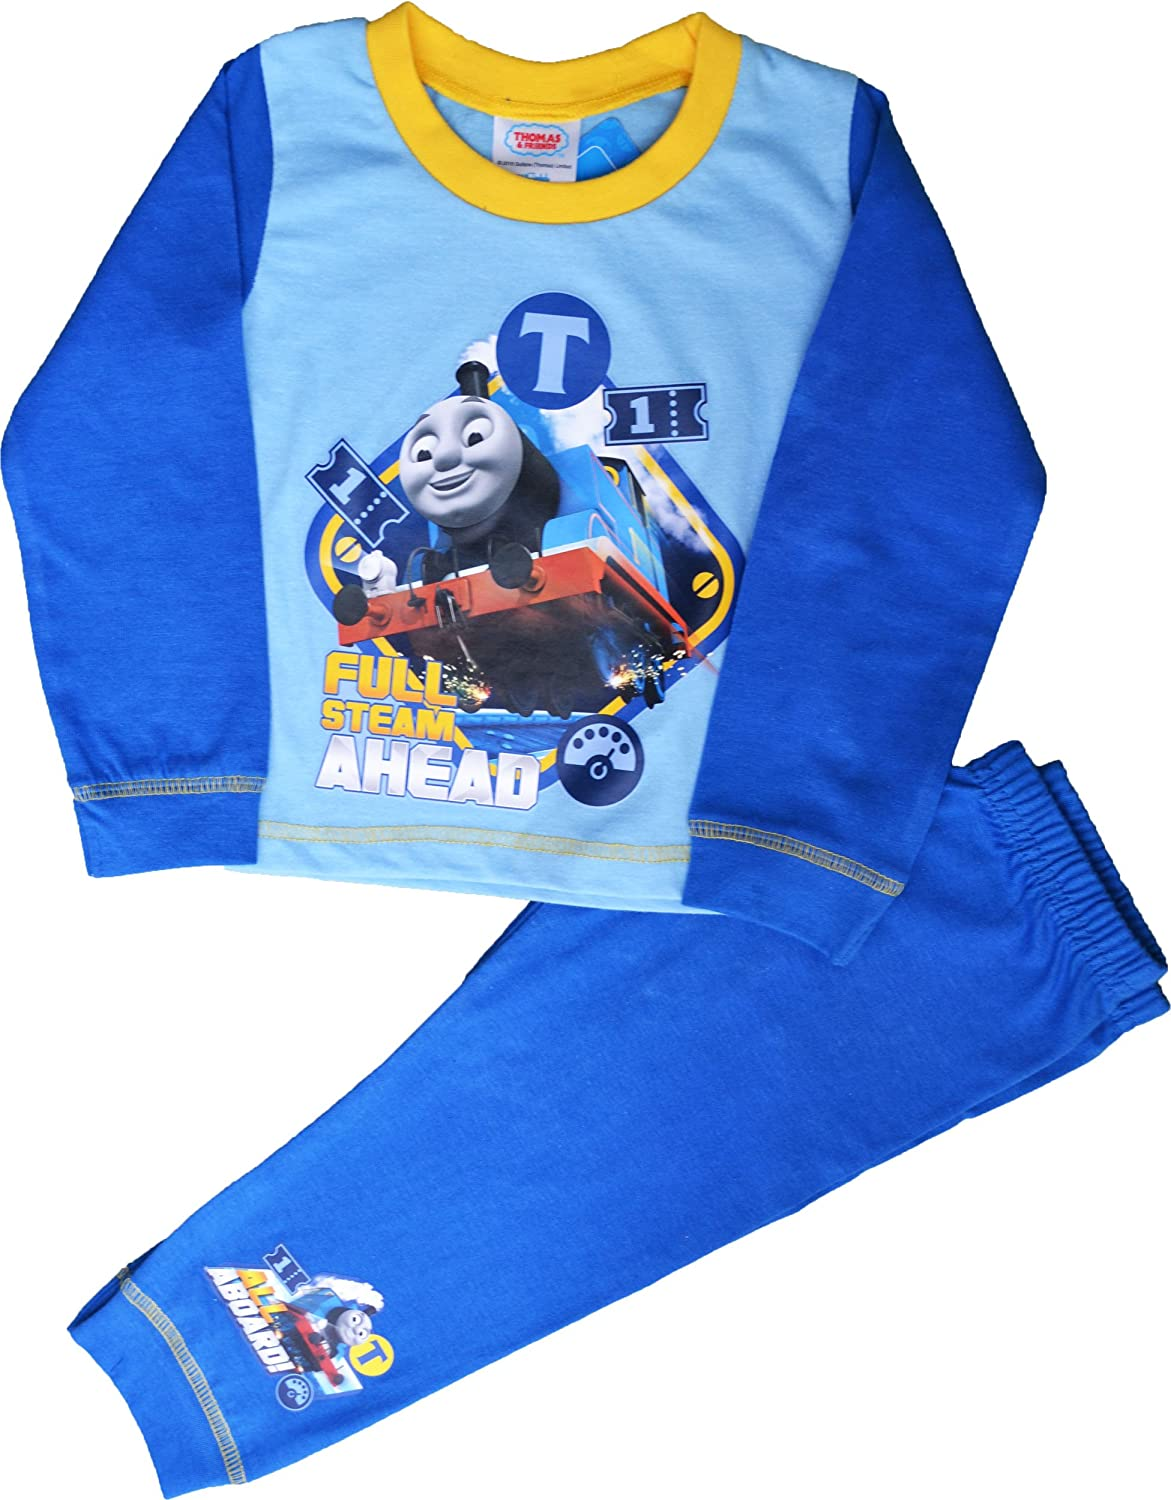 Boys Thomas Tank Engine No 1 Pyjamas Sizes 12 Months to 4 Years